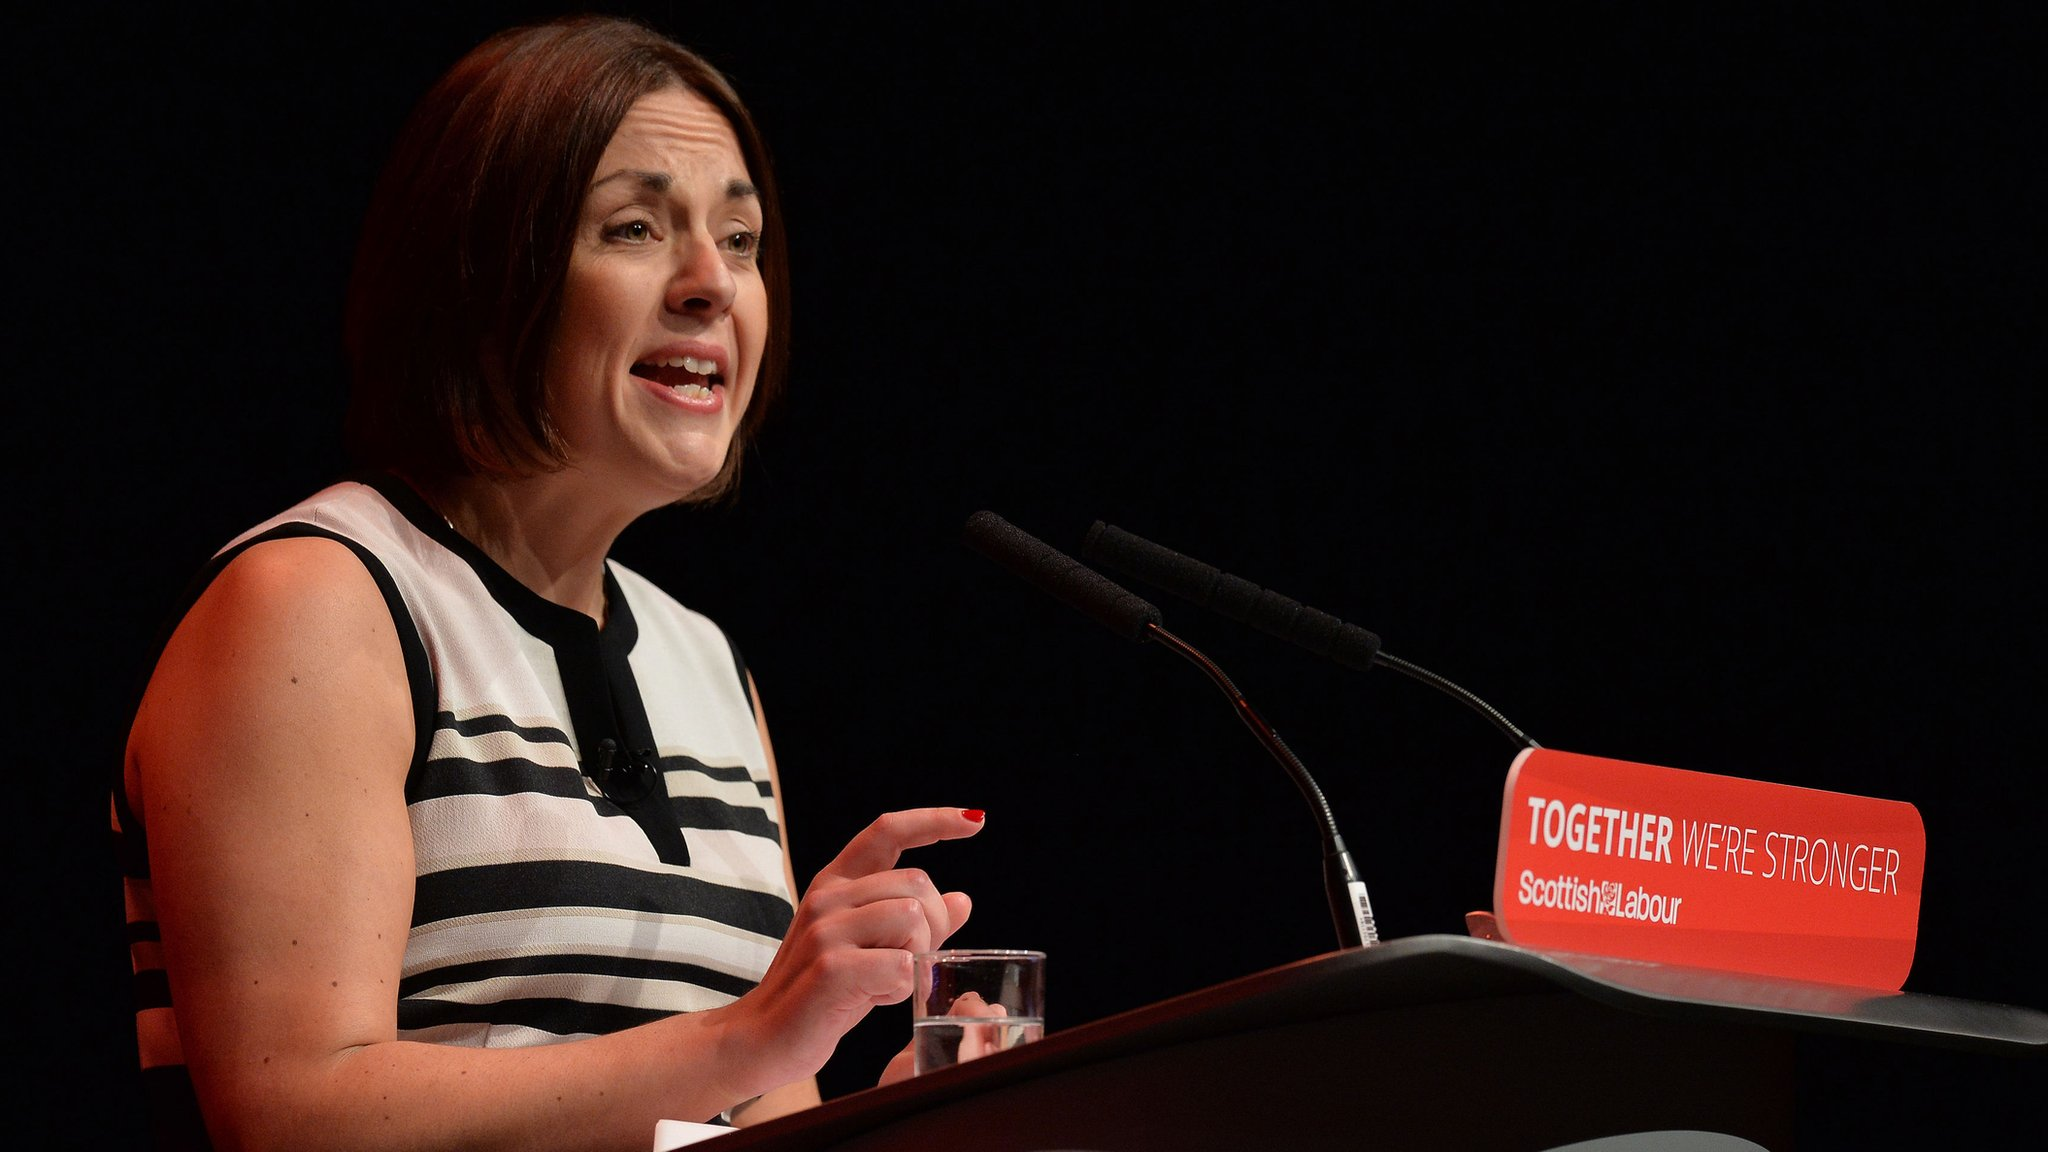 Dugdale's pledge to protect the union